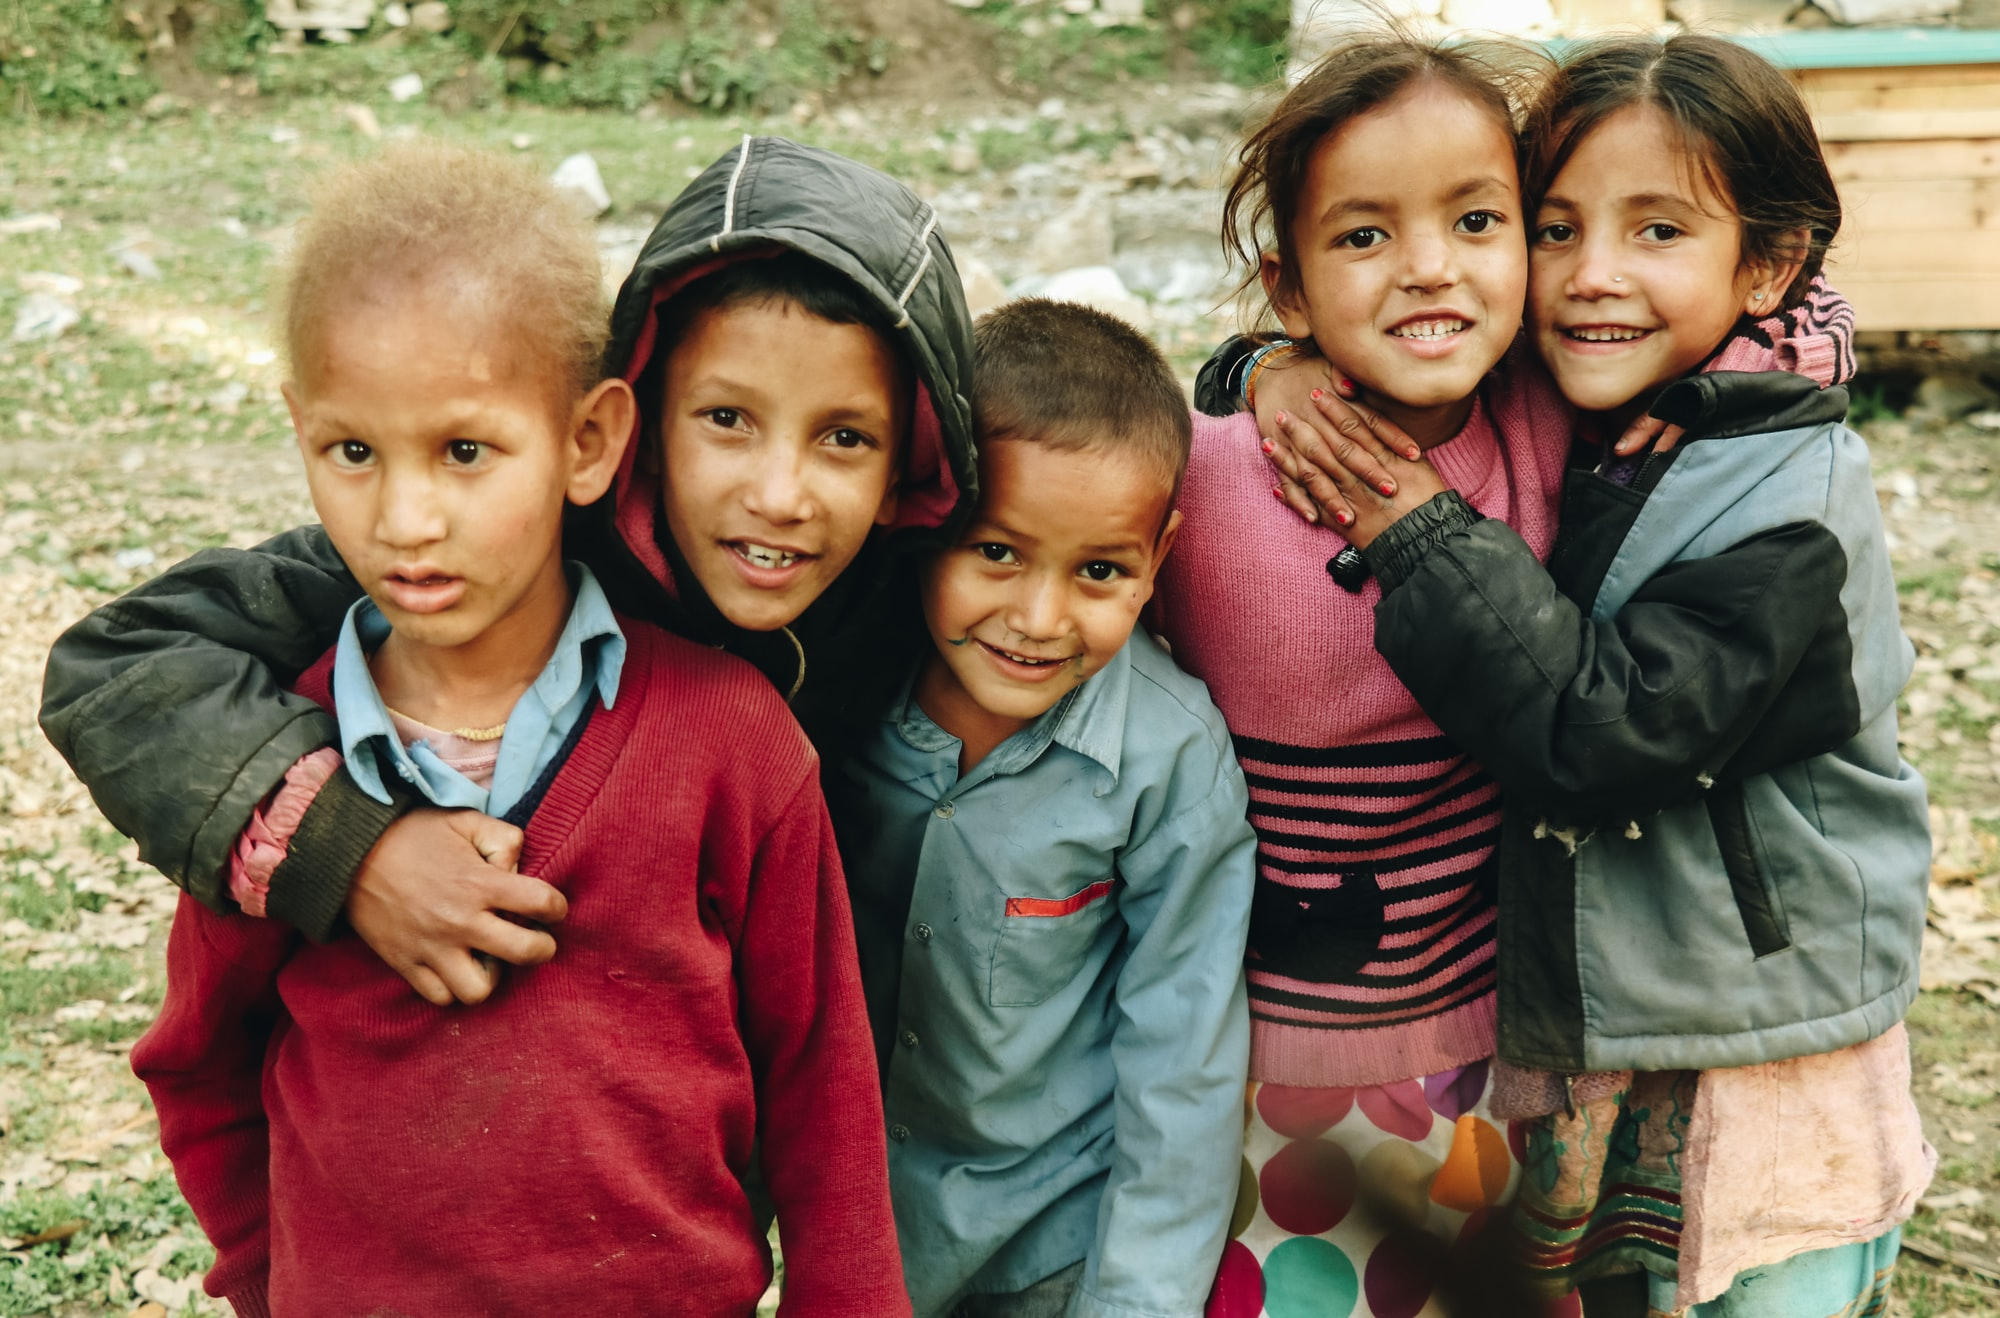 I recently went for Sarpass trek in Himachal Pradesh (India) and found these cute kids at the first base camp called Grahan. When asked they told me they were siblings and they love their life out of the city chaos. They were happy, as the picture shows.